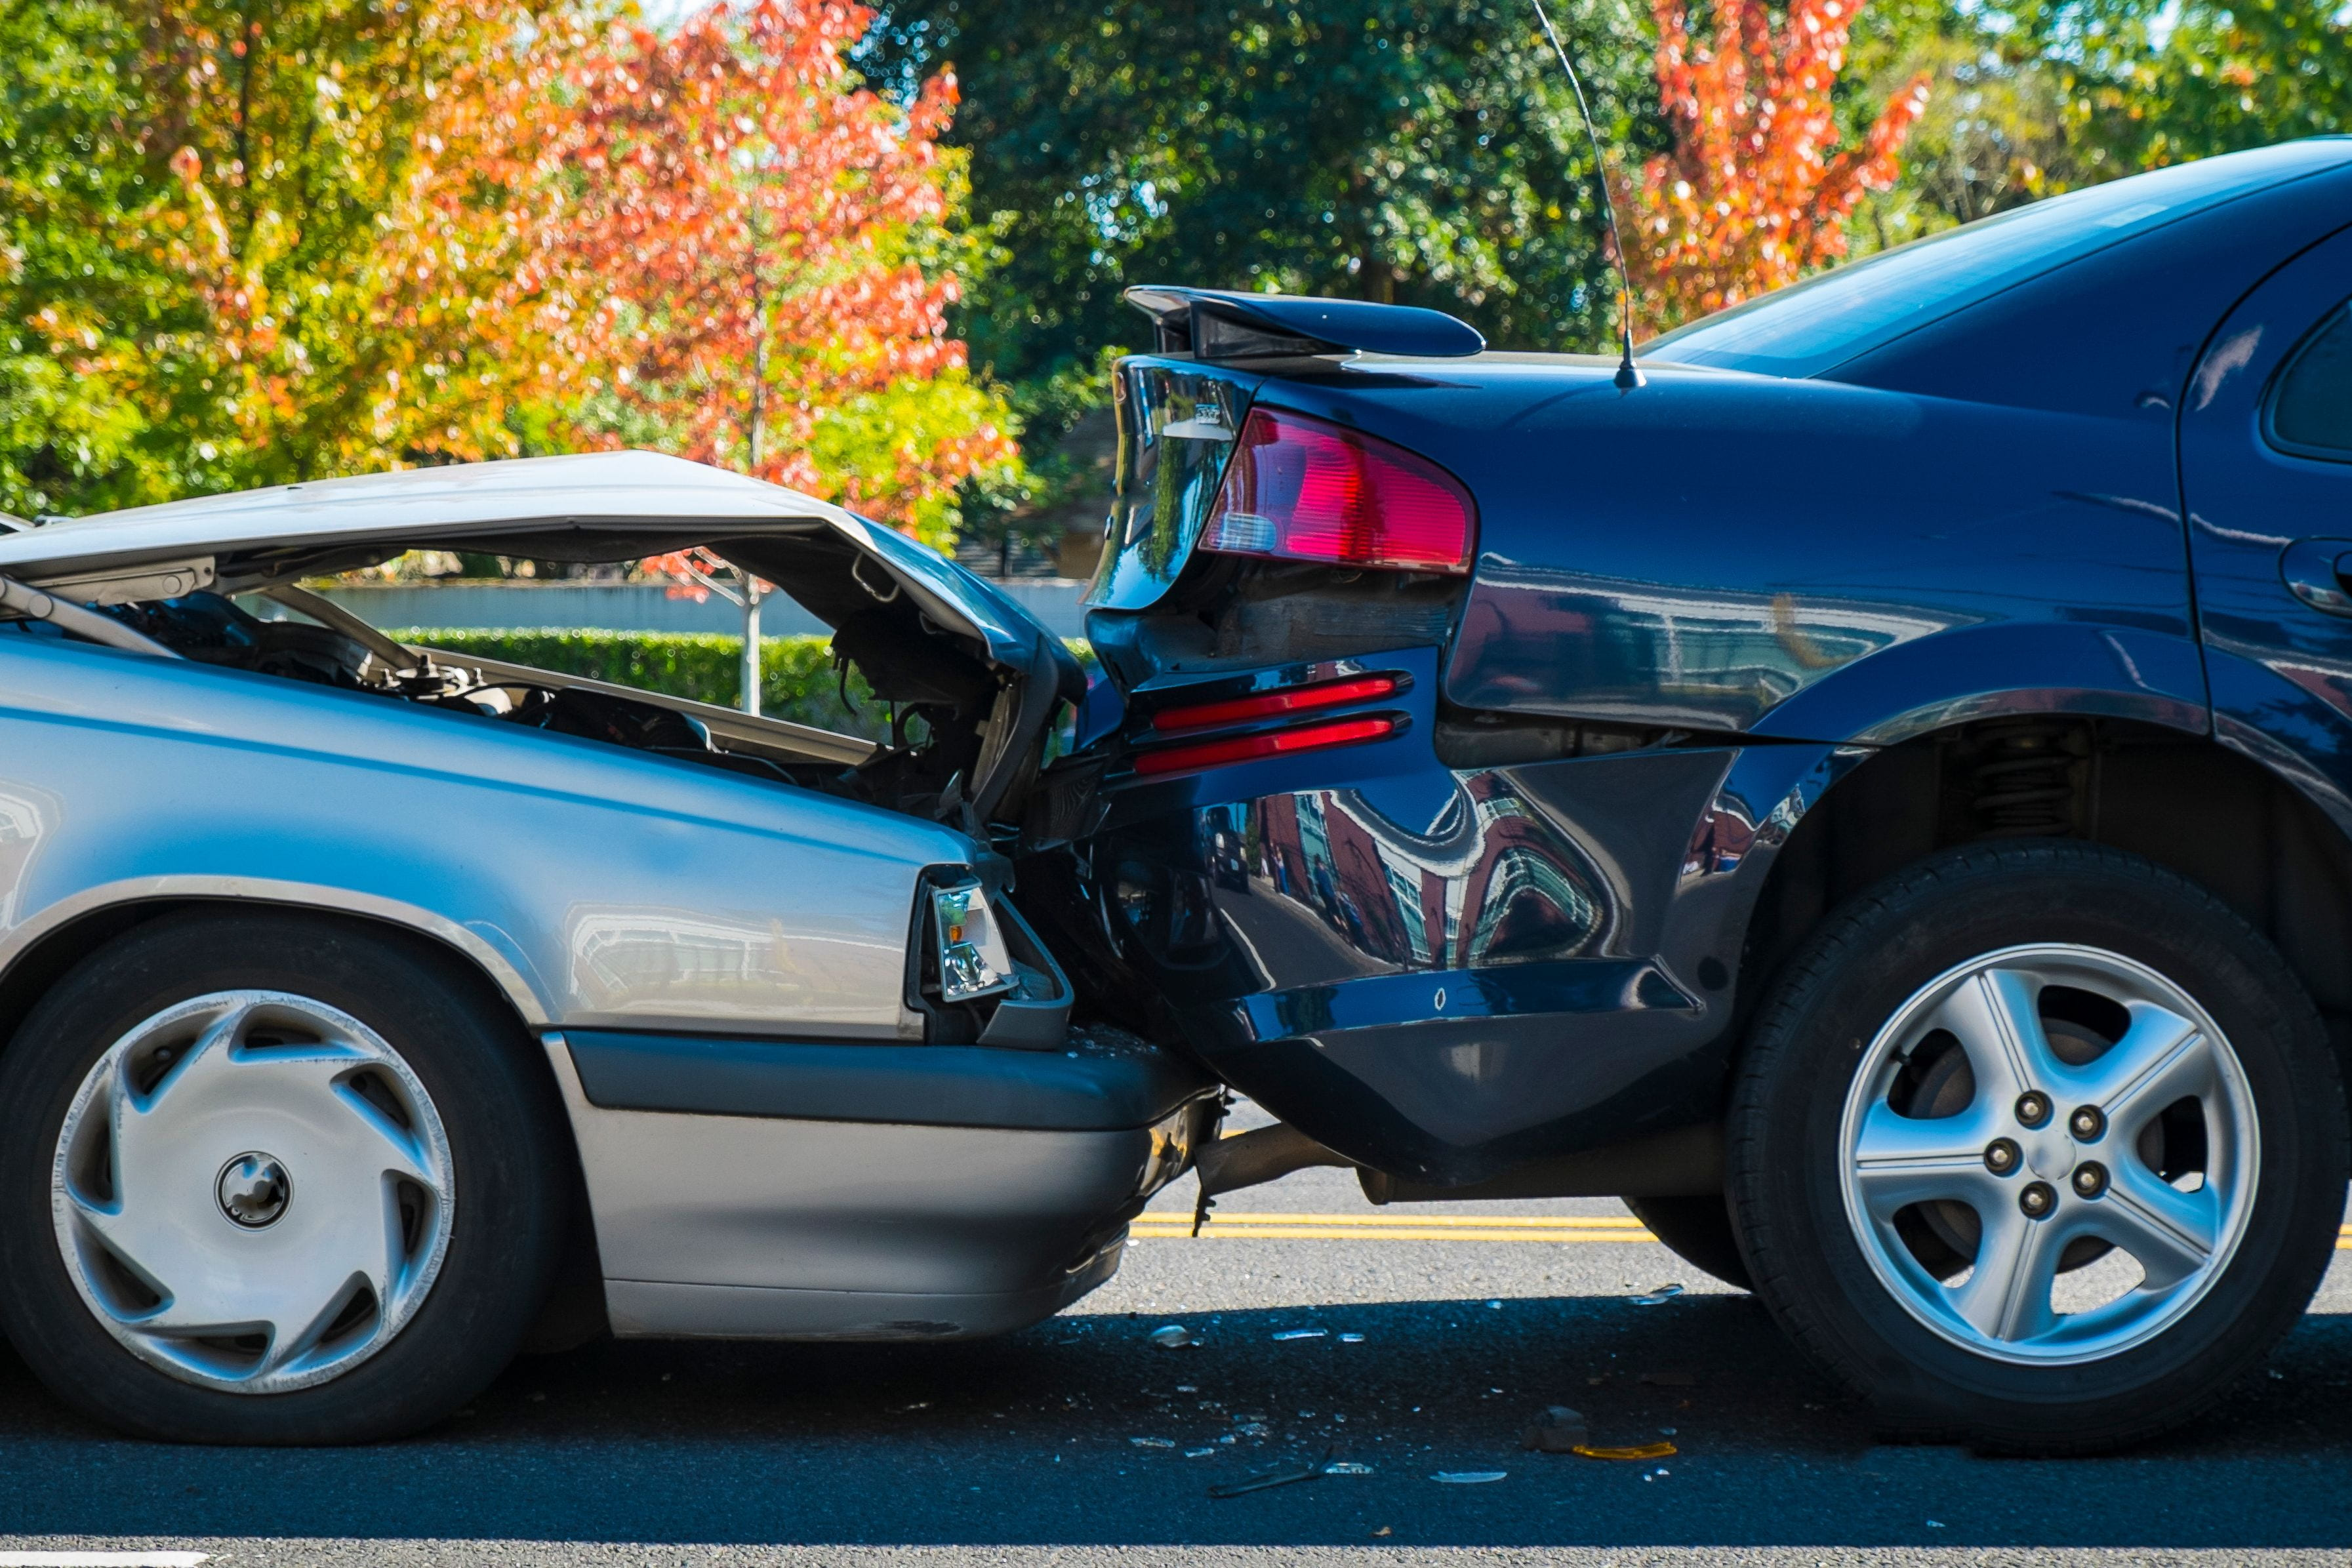 Contact us for more information about auto defect lawsuits.